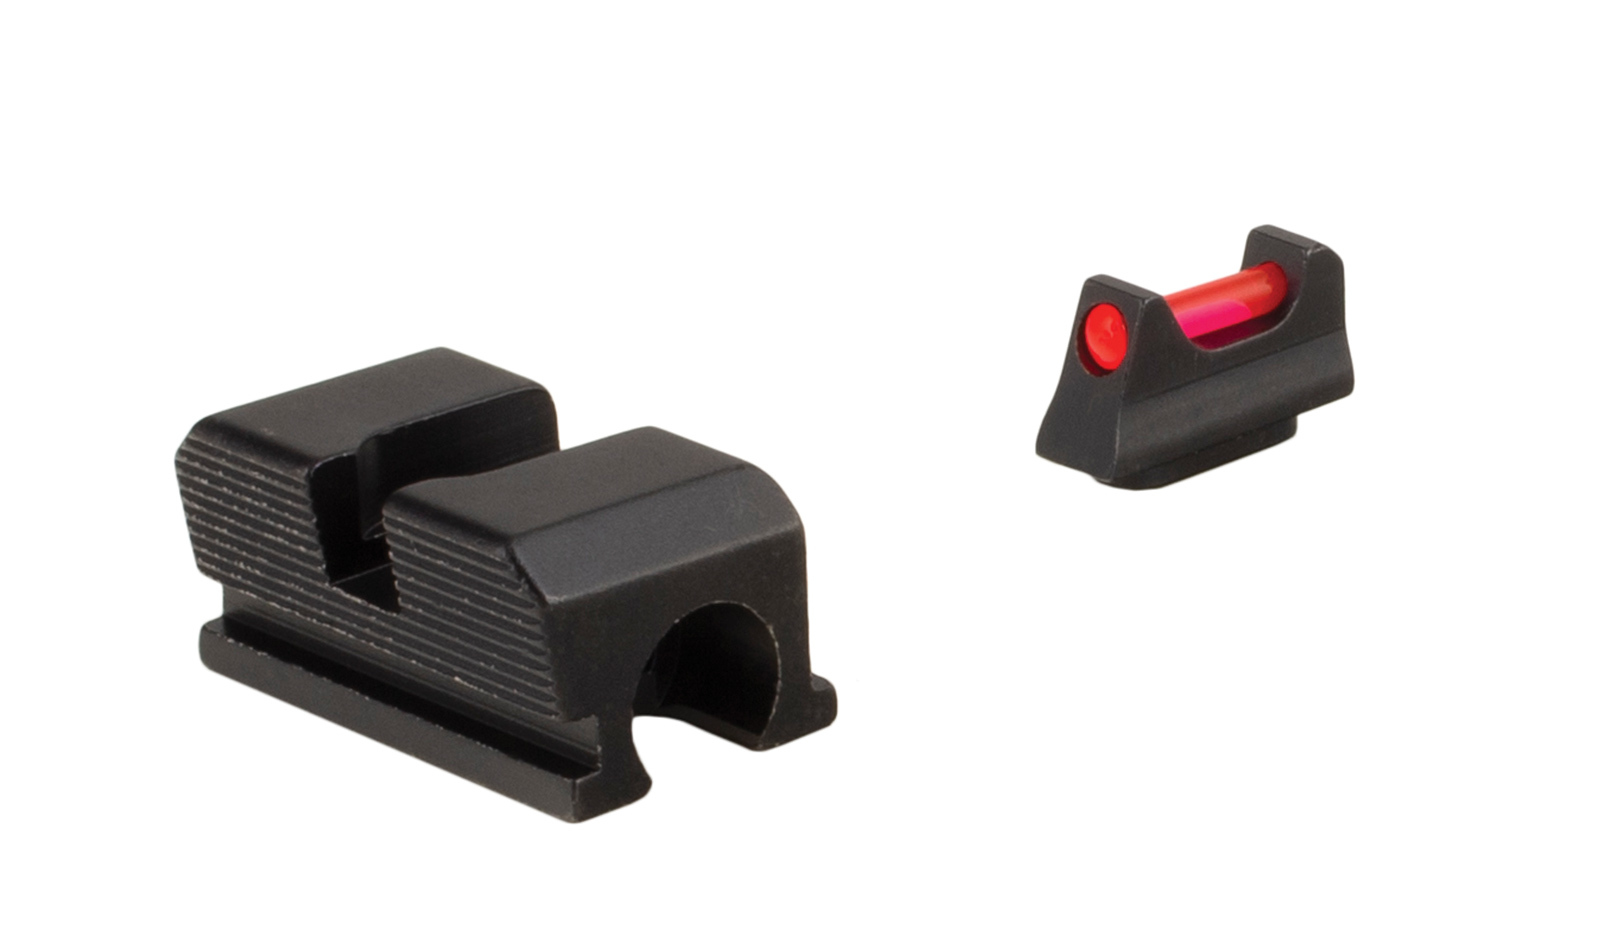 Trijicon<sup>®</sup>  Fiber Sights - Walther<sup>®</sup> PPS / PPX